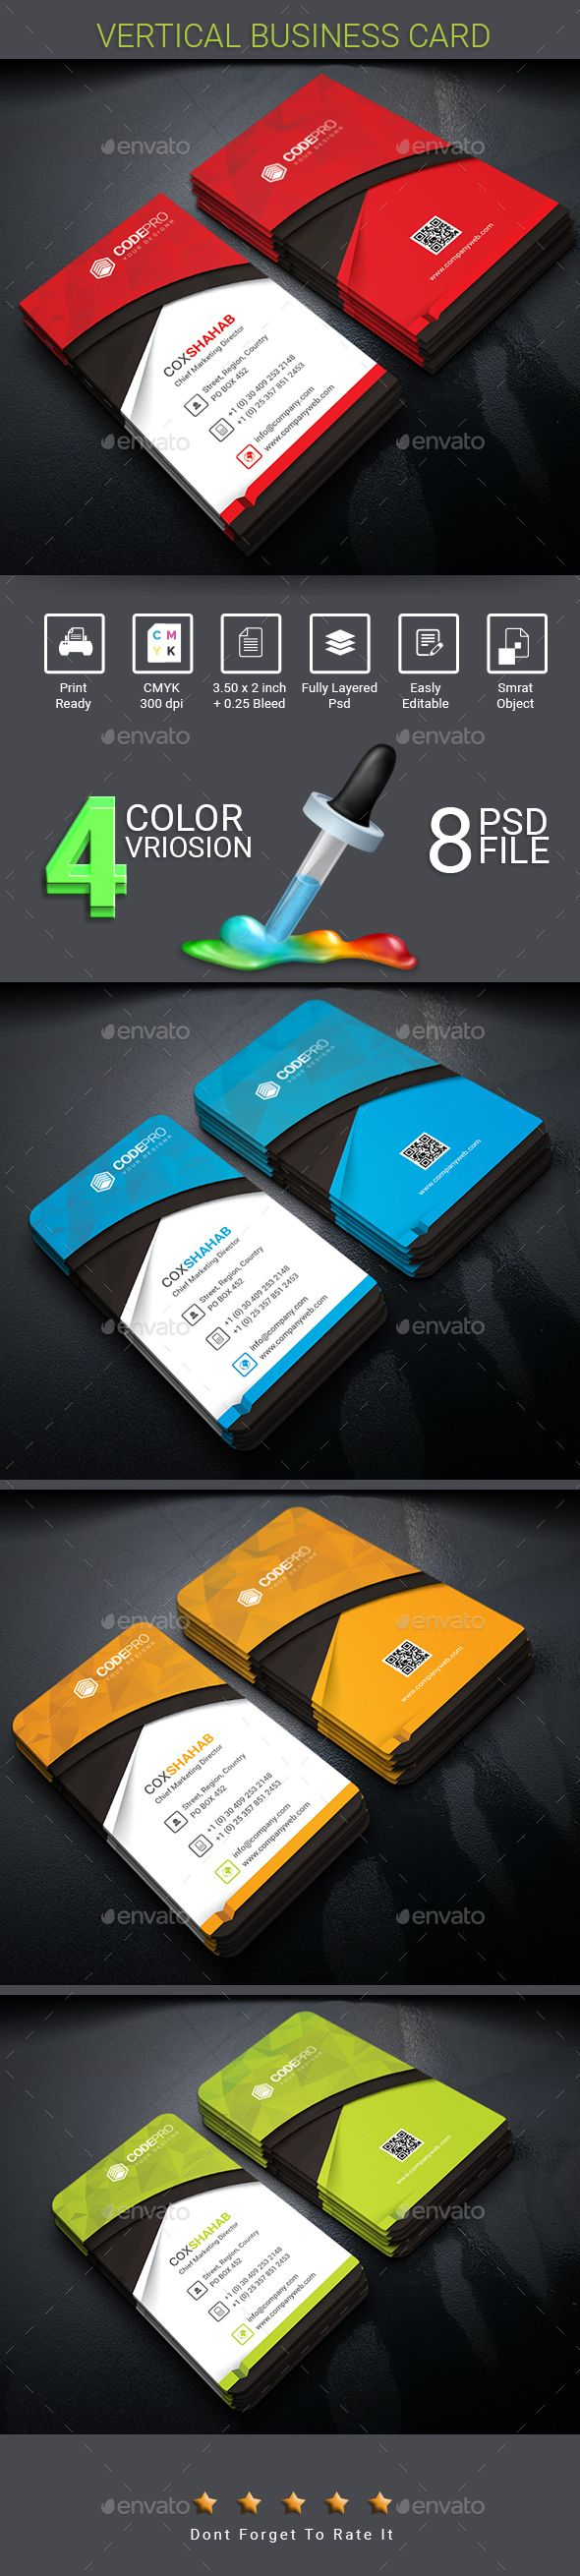 The 25 best vertical business cards ideas on pinterest modern vertical business card reheart Choice Image